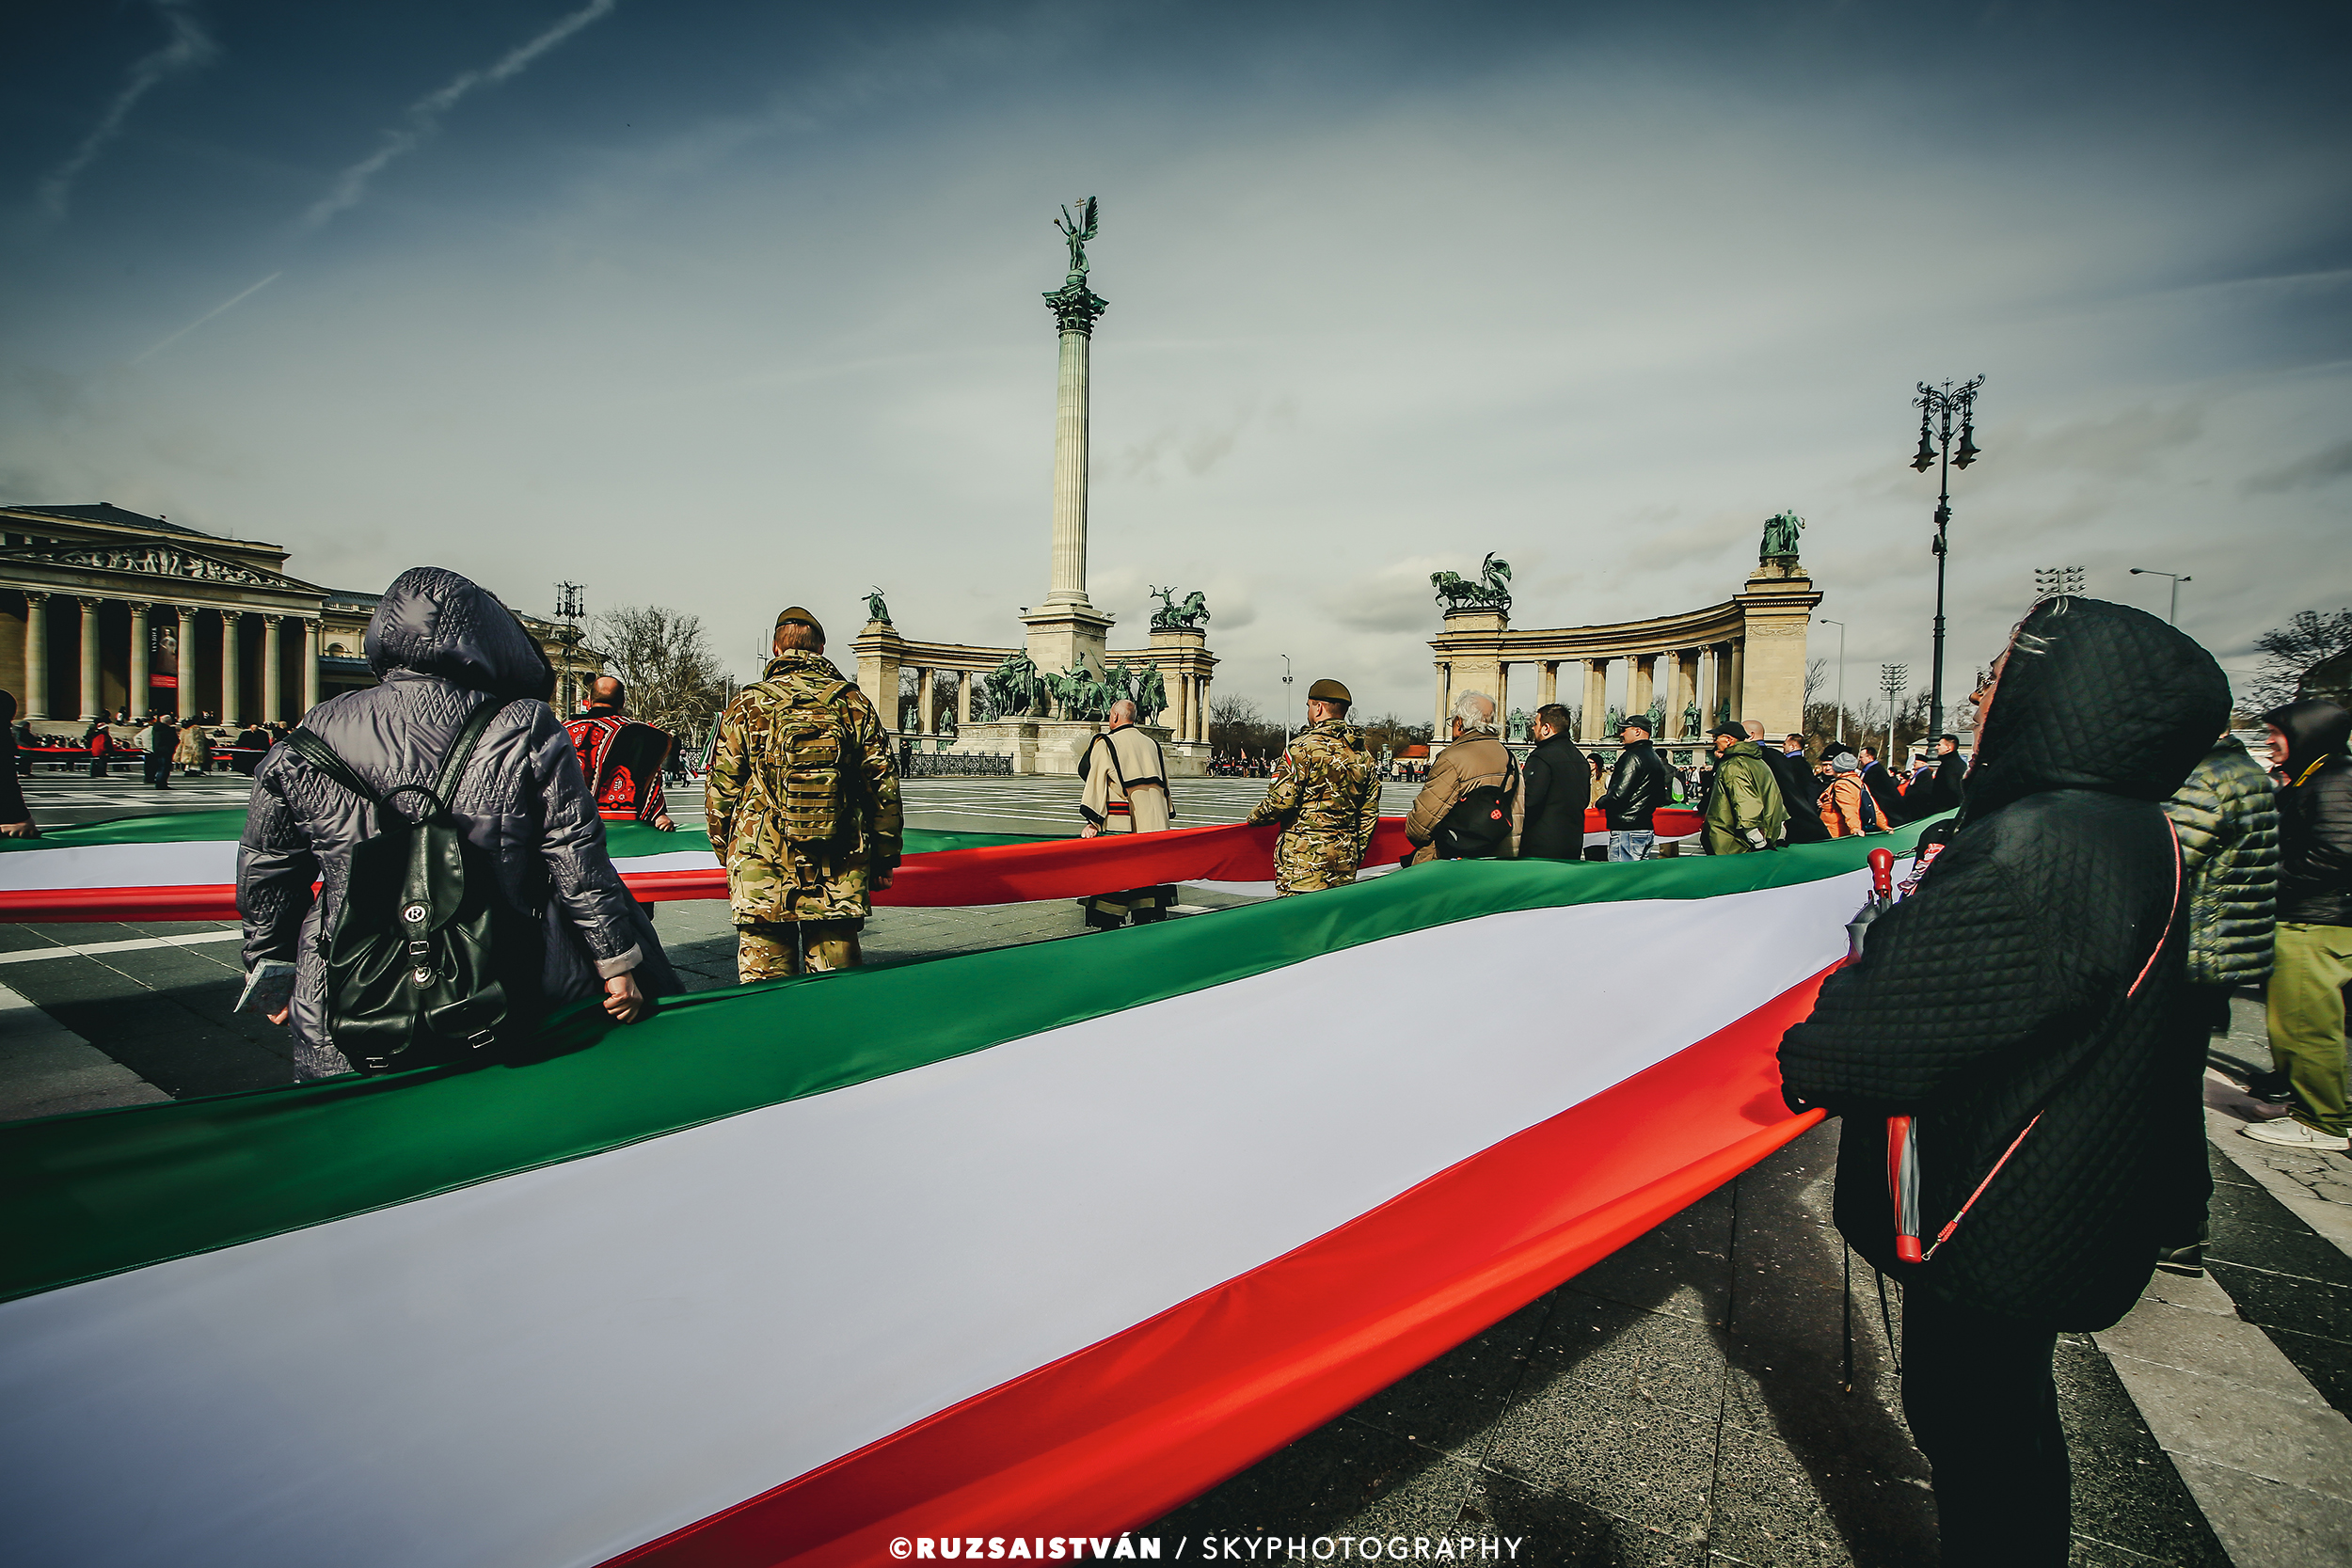 1,848-meter long Hungarian national flag in Budapest